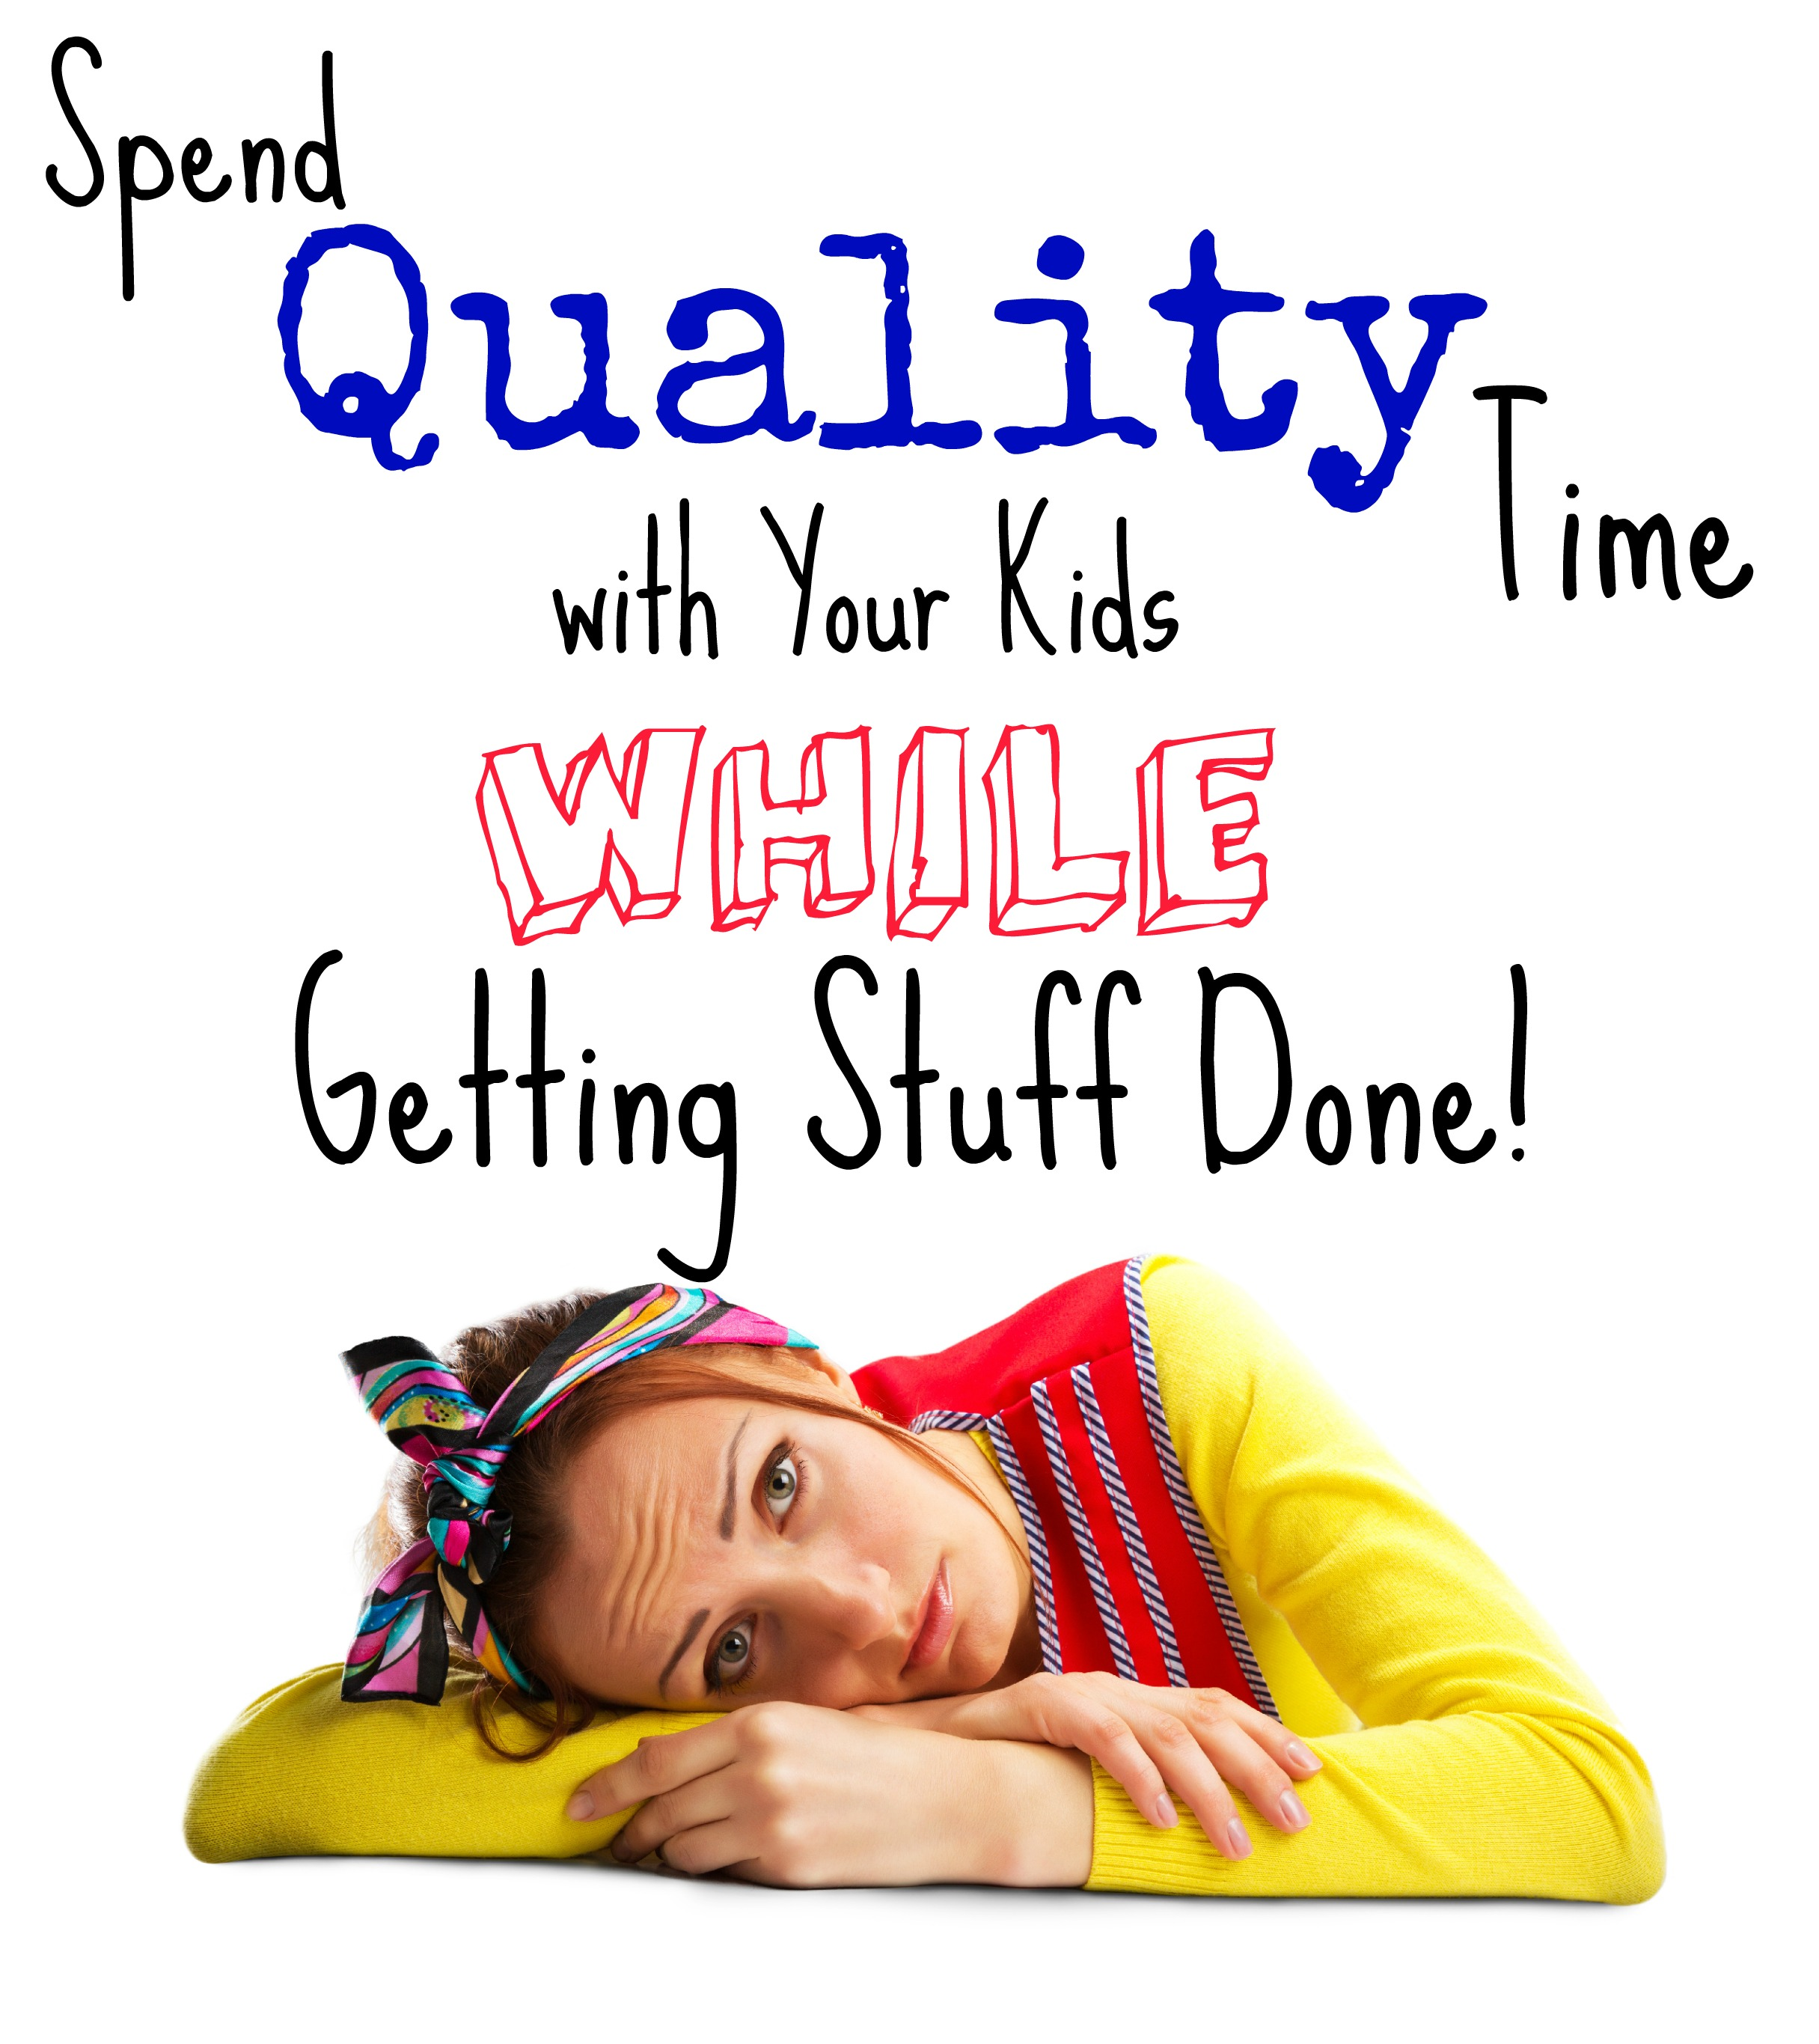 How To Spend Quality Time With Your Kids While Getting Stuff Done